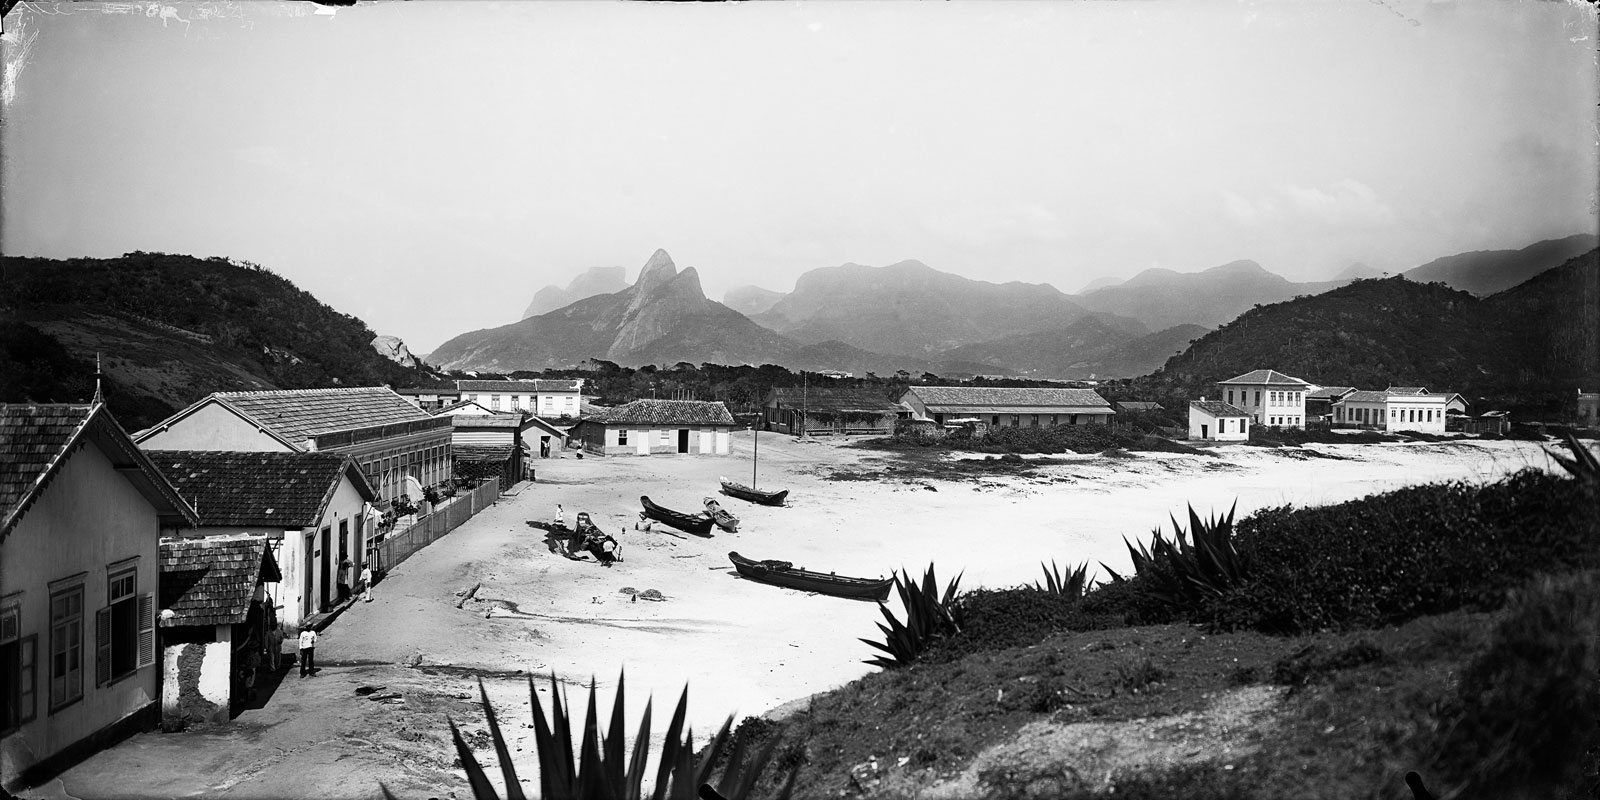 Copacabana, with Dois Irmãos Hill in the background, circa 1865